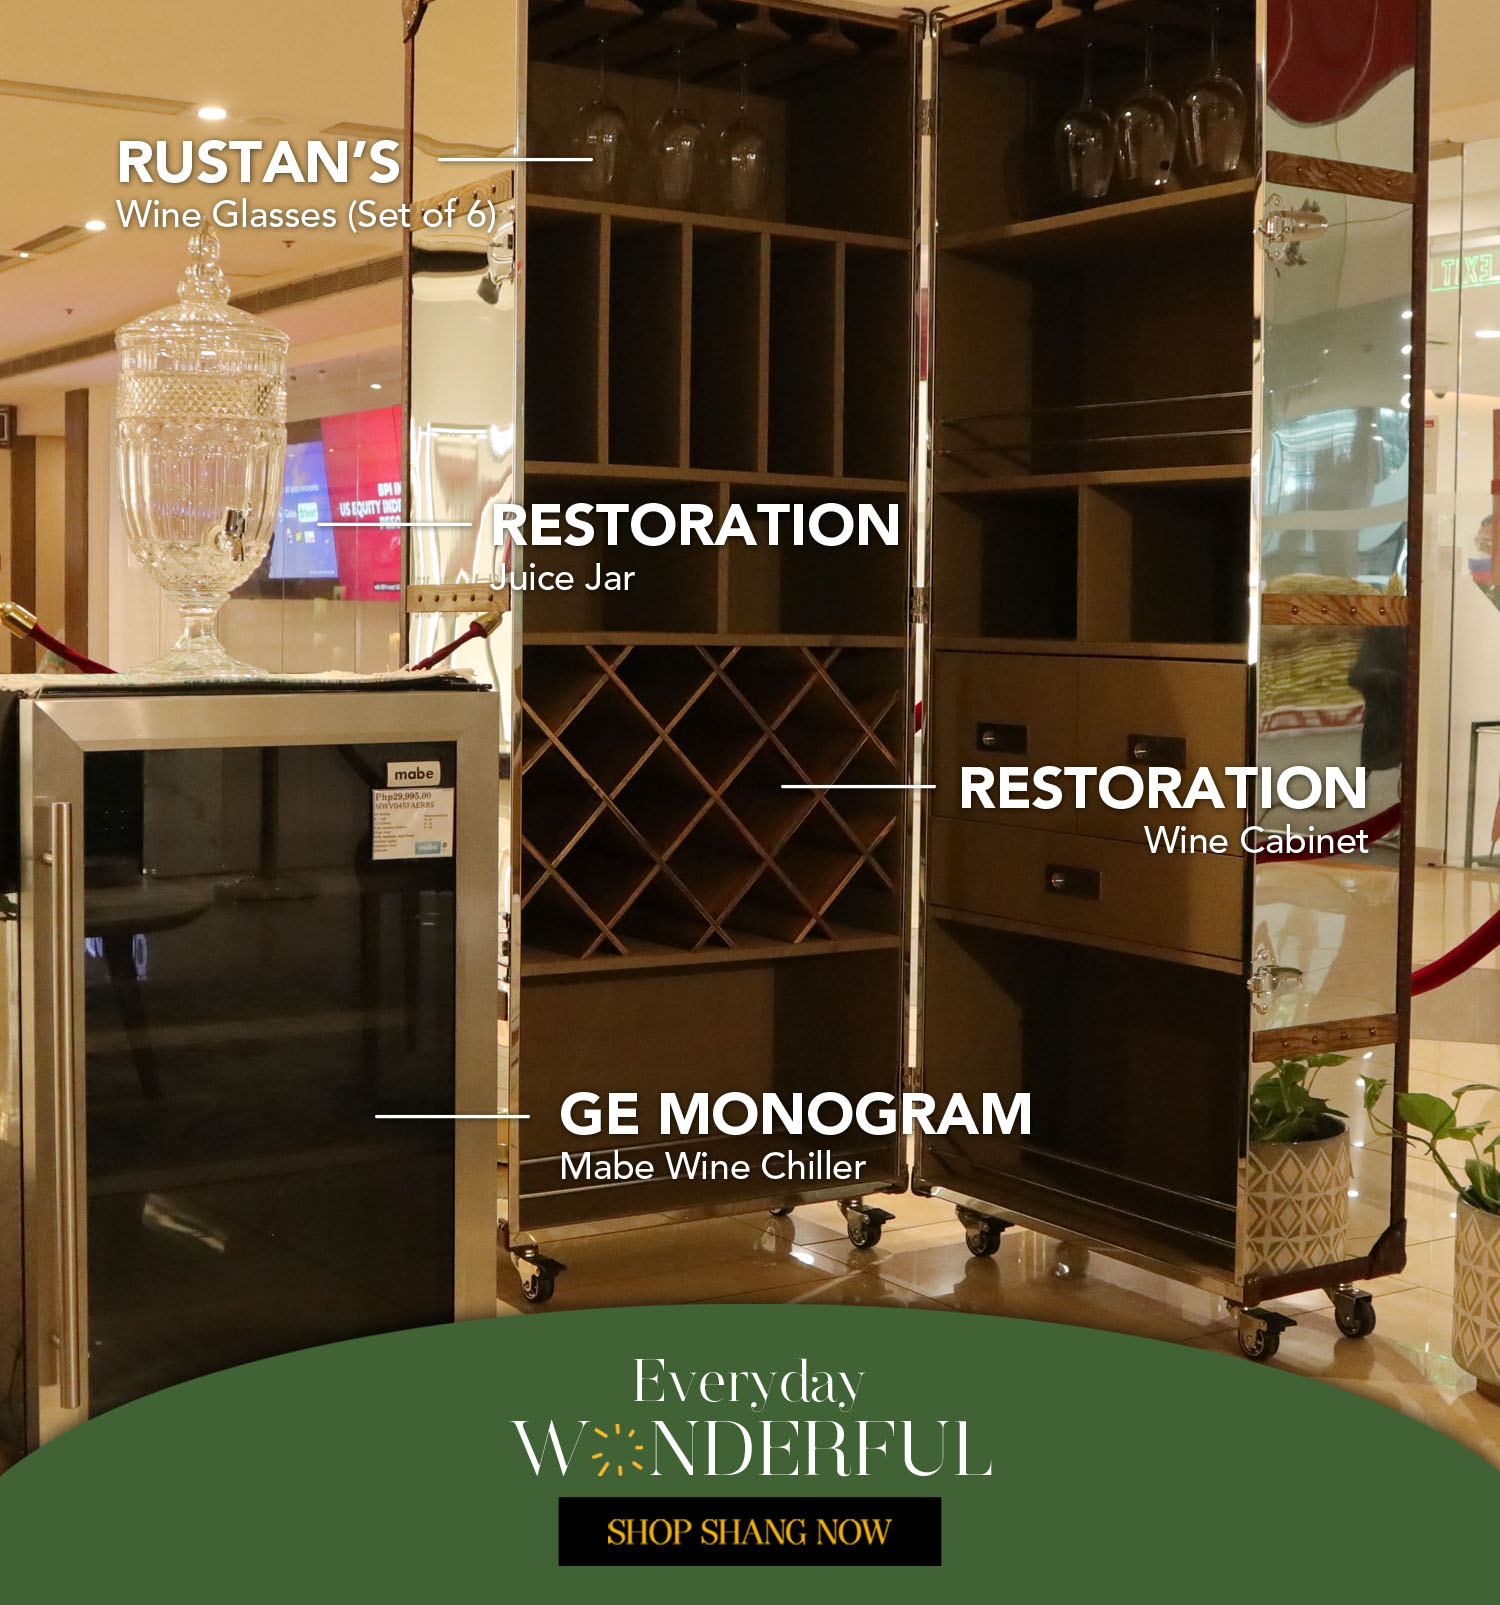 Wine Cabinet and Juice Jar from Restoration_Mabe Wine Chiller from GE Monogram_Wine Glasses(Set of 6) from Rustan's